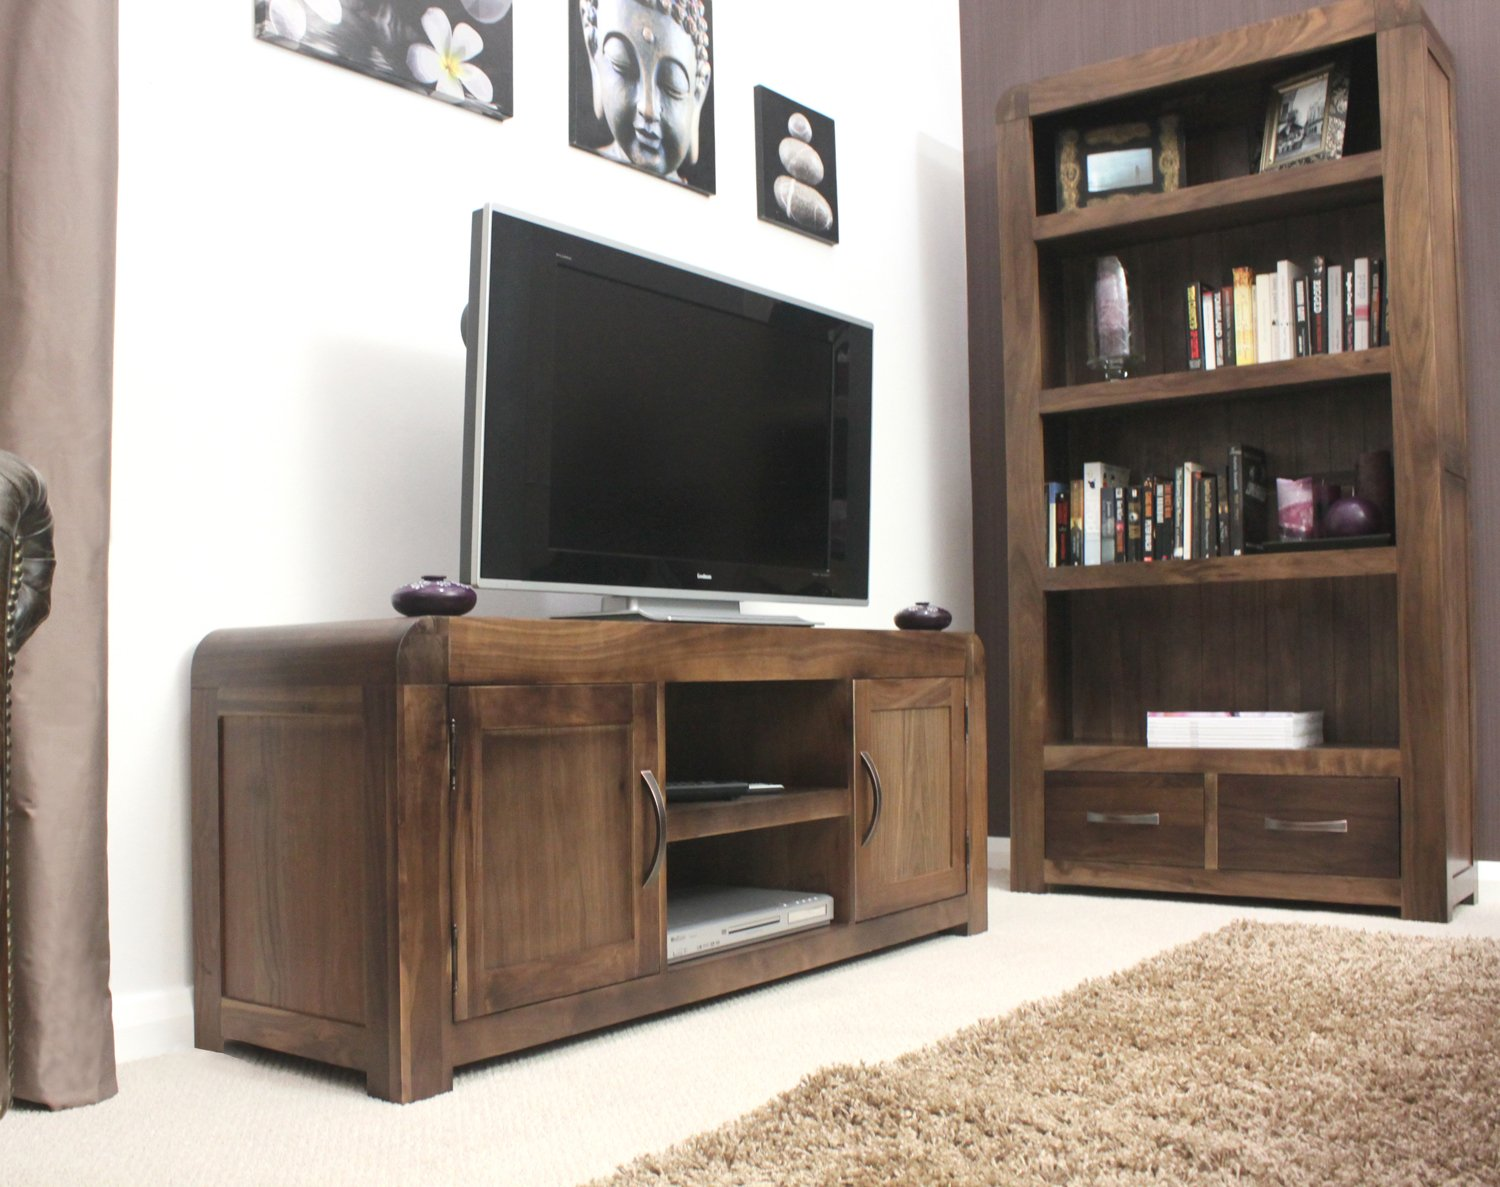 Baumhaus Shiro Walnut Widescreen Television Cabinet: Amazon.co.uk ...